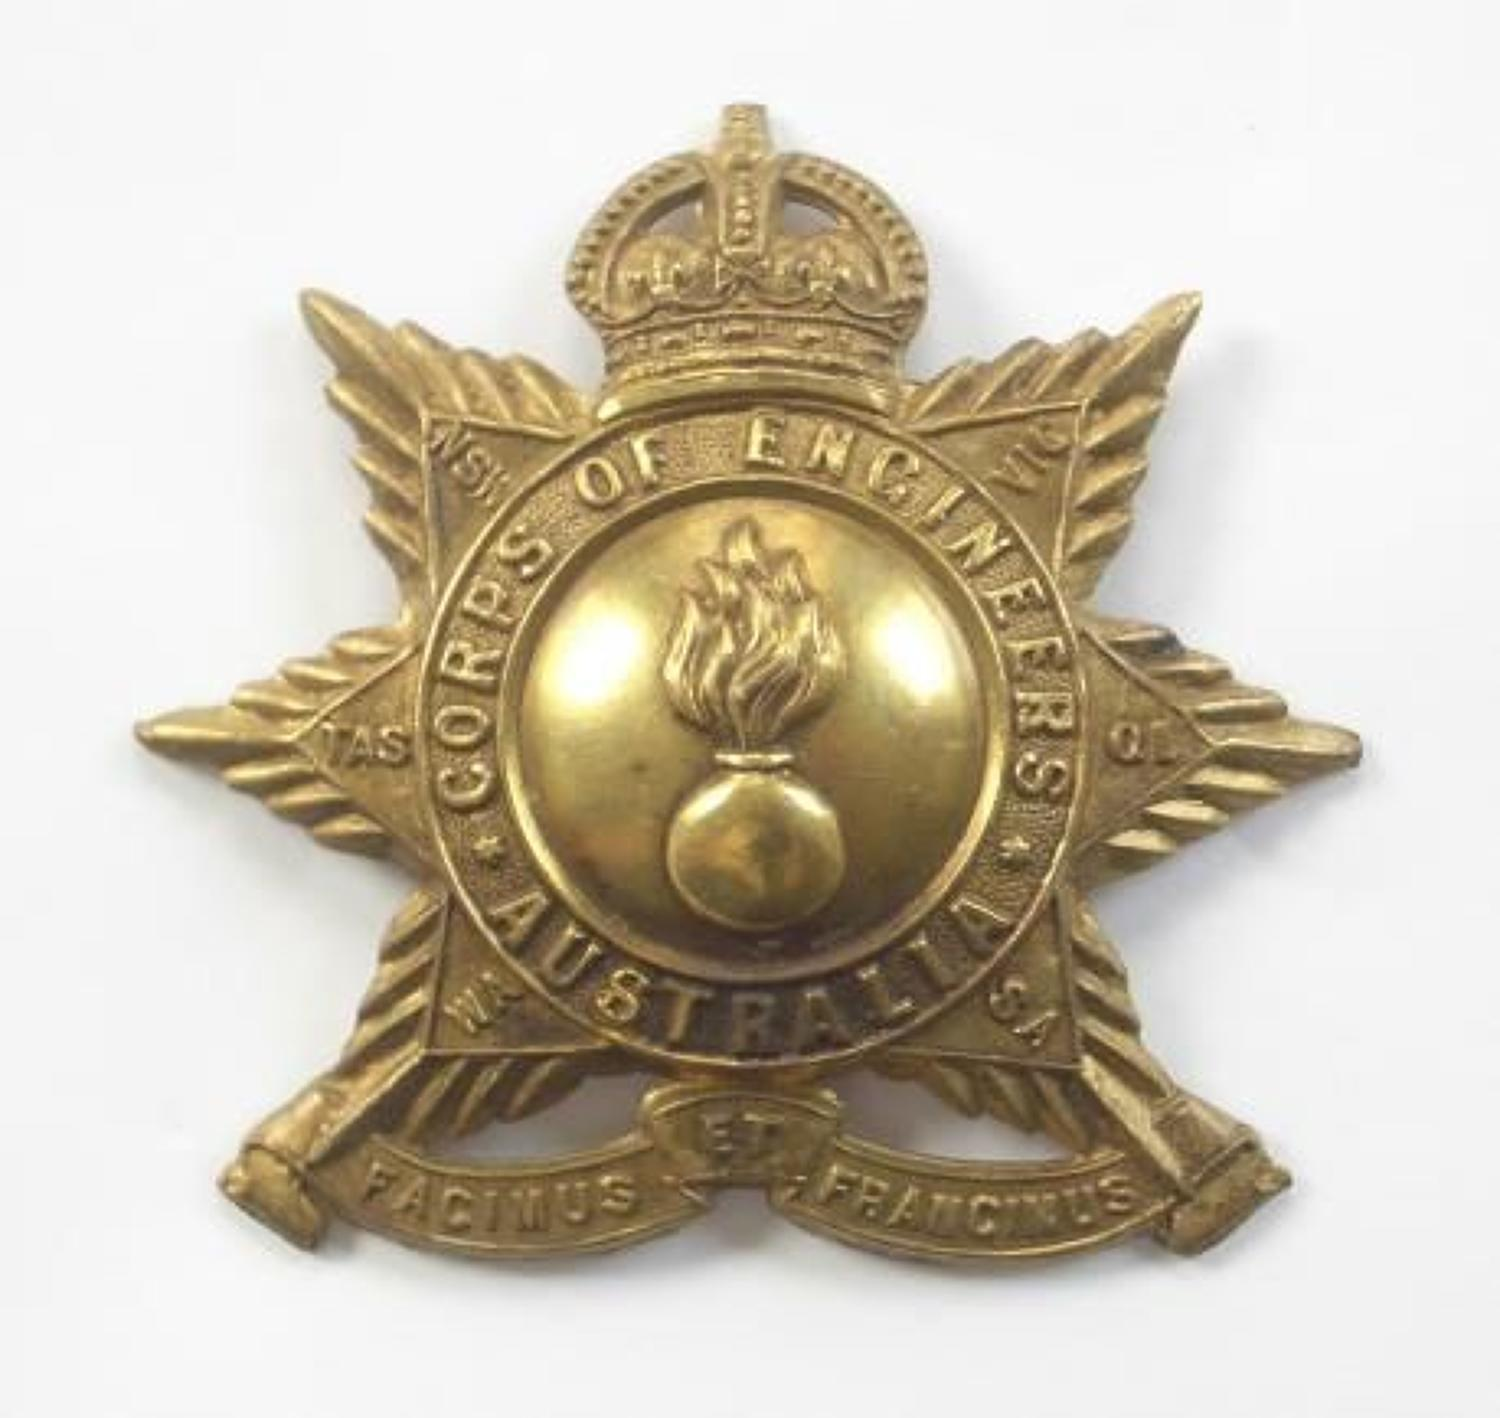 Australian Corps of Engineers head-dress badge circa 1902-12